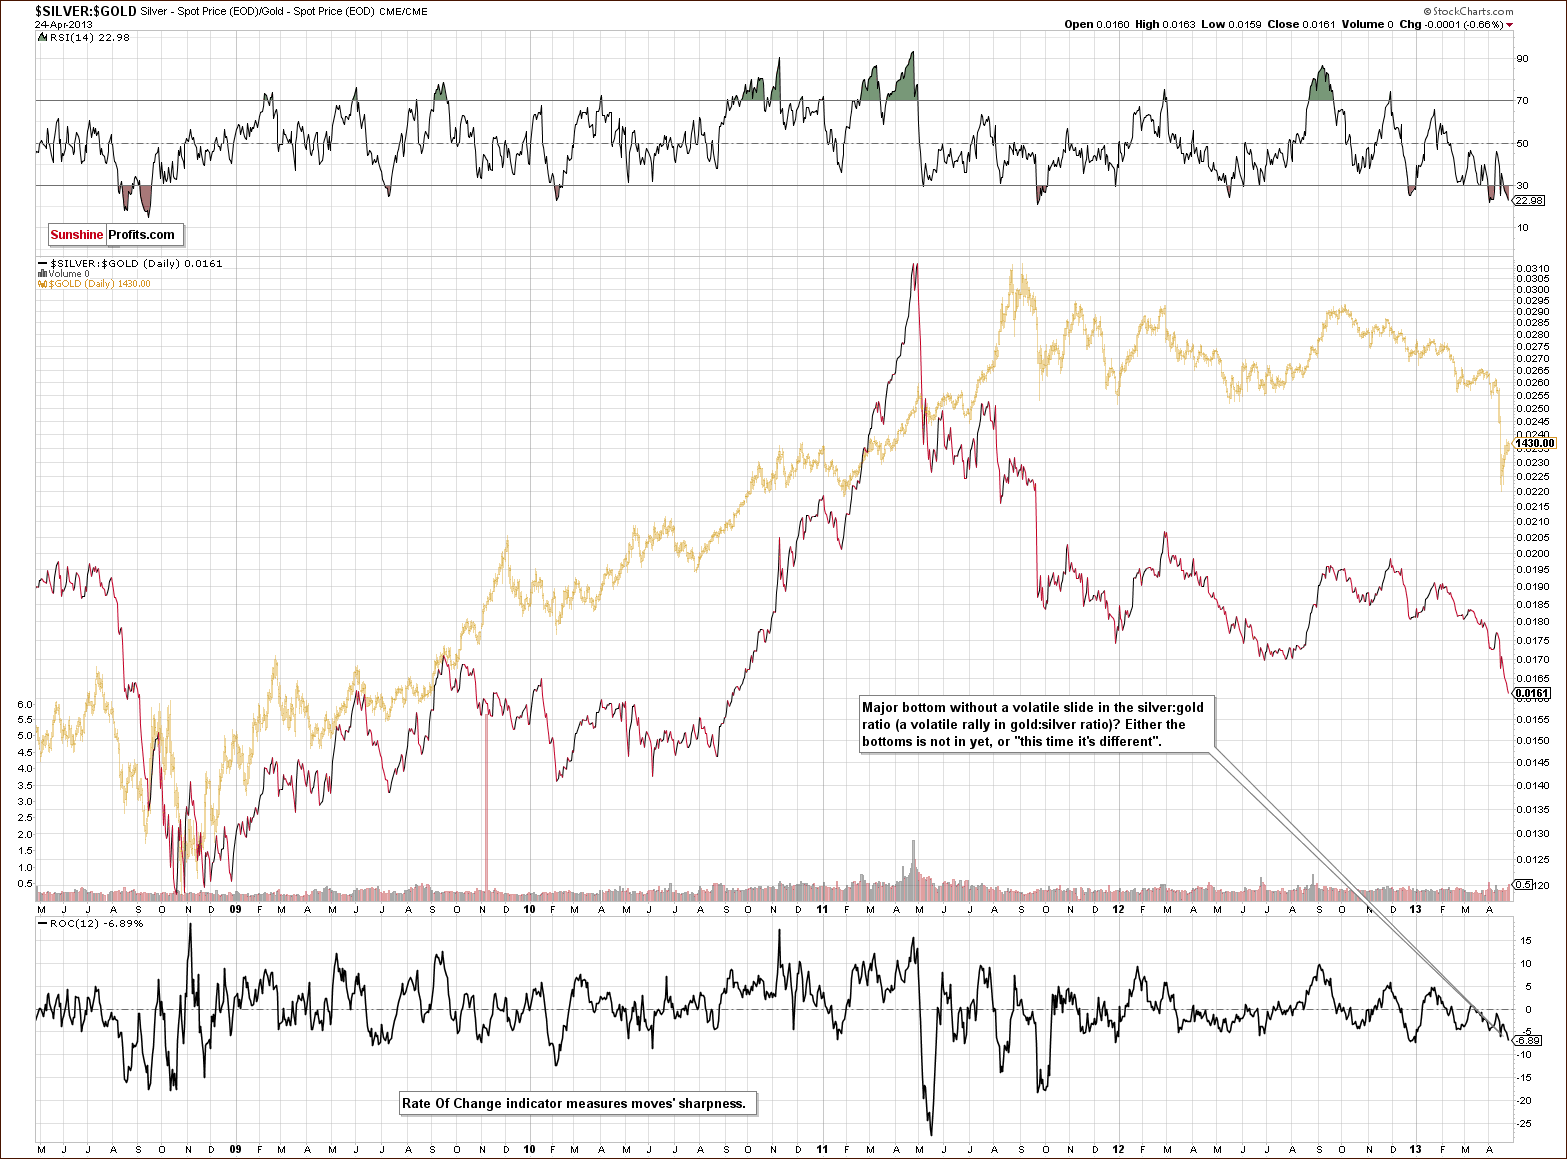 Silver to Gold ratio chart - SILVER:GOLD